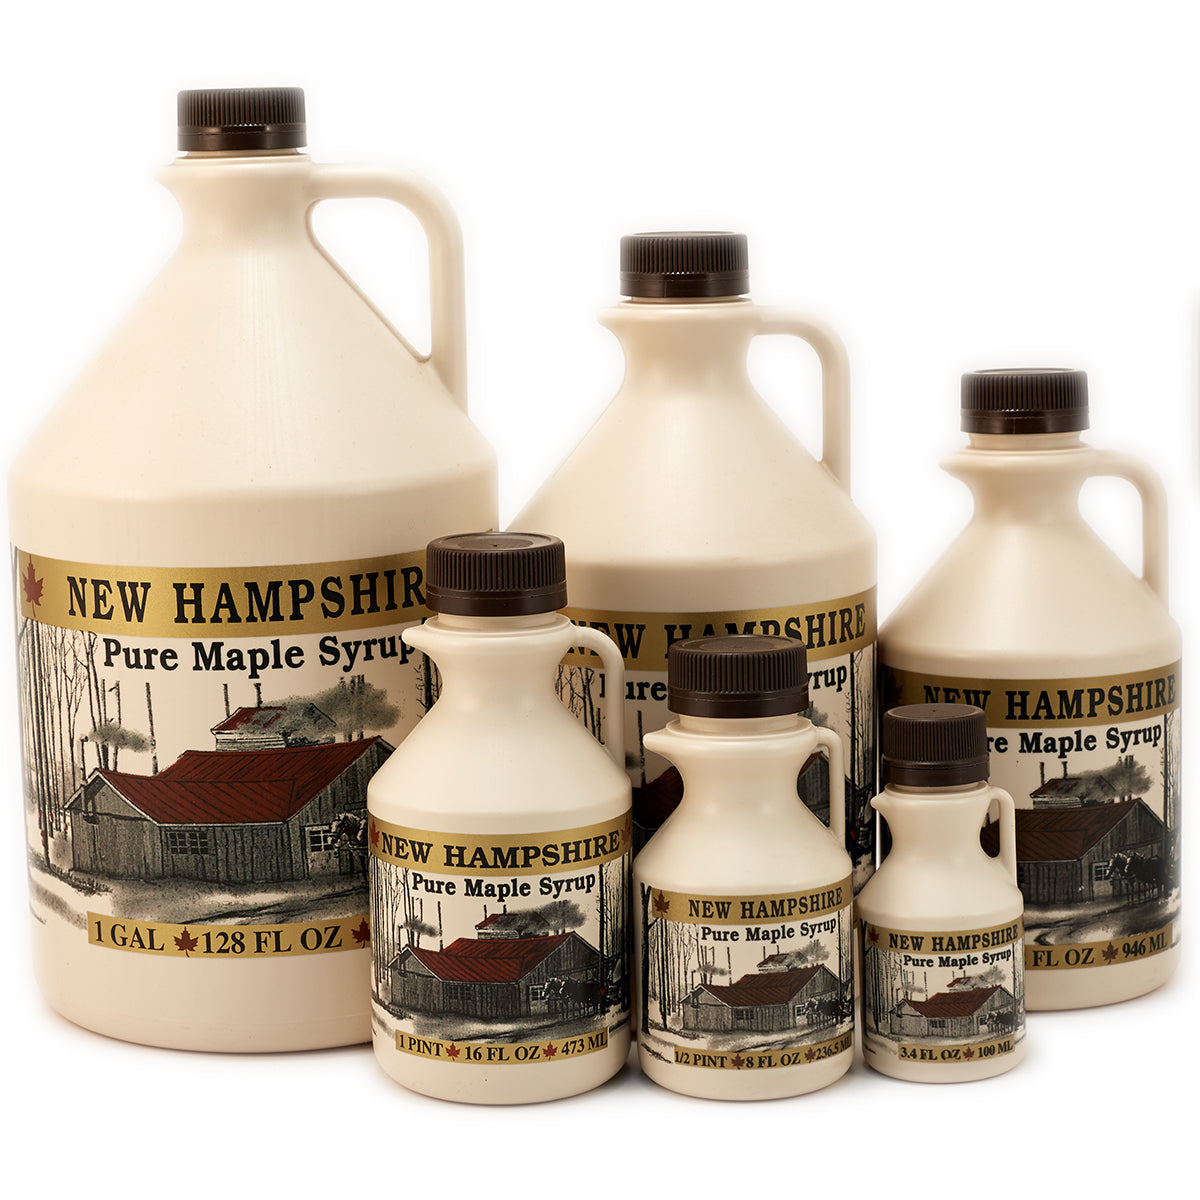 NH Colonial Gold 100 ml Jug (100/case) - While Supply Lasts